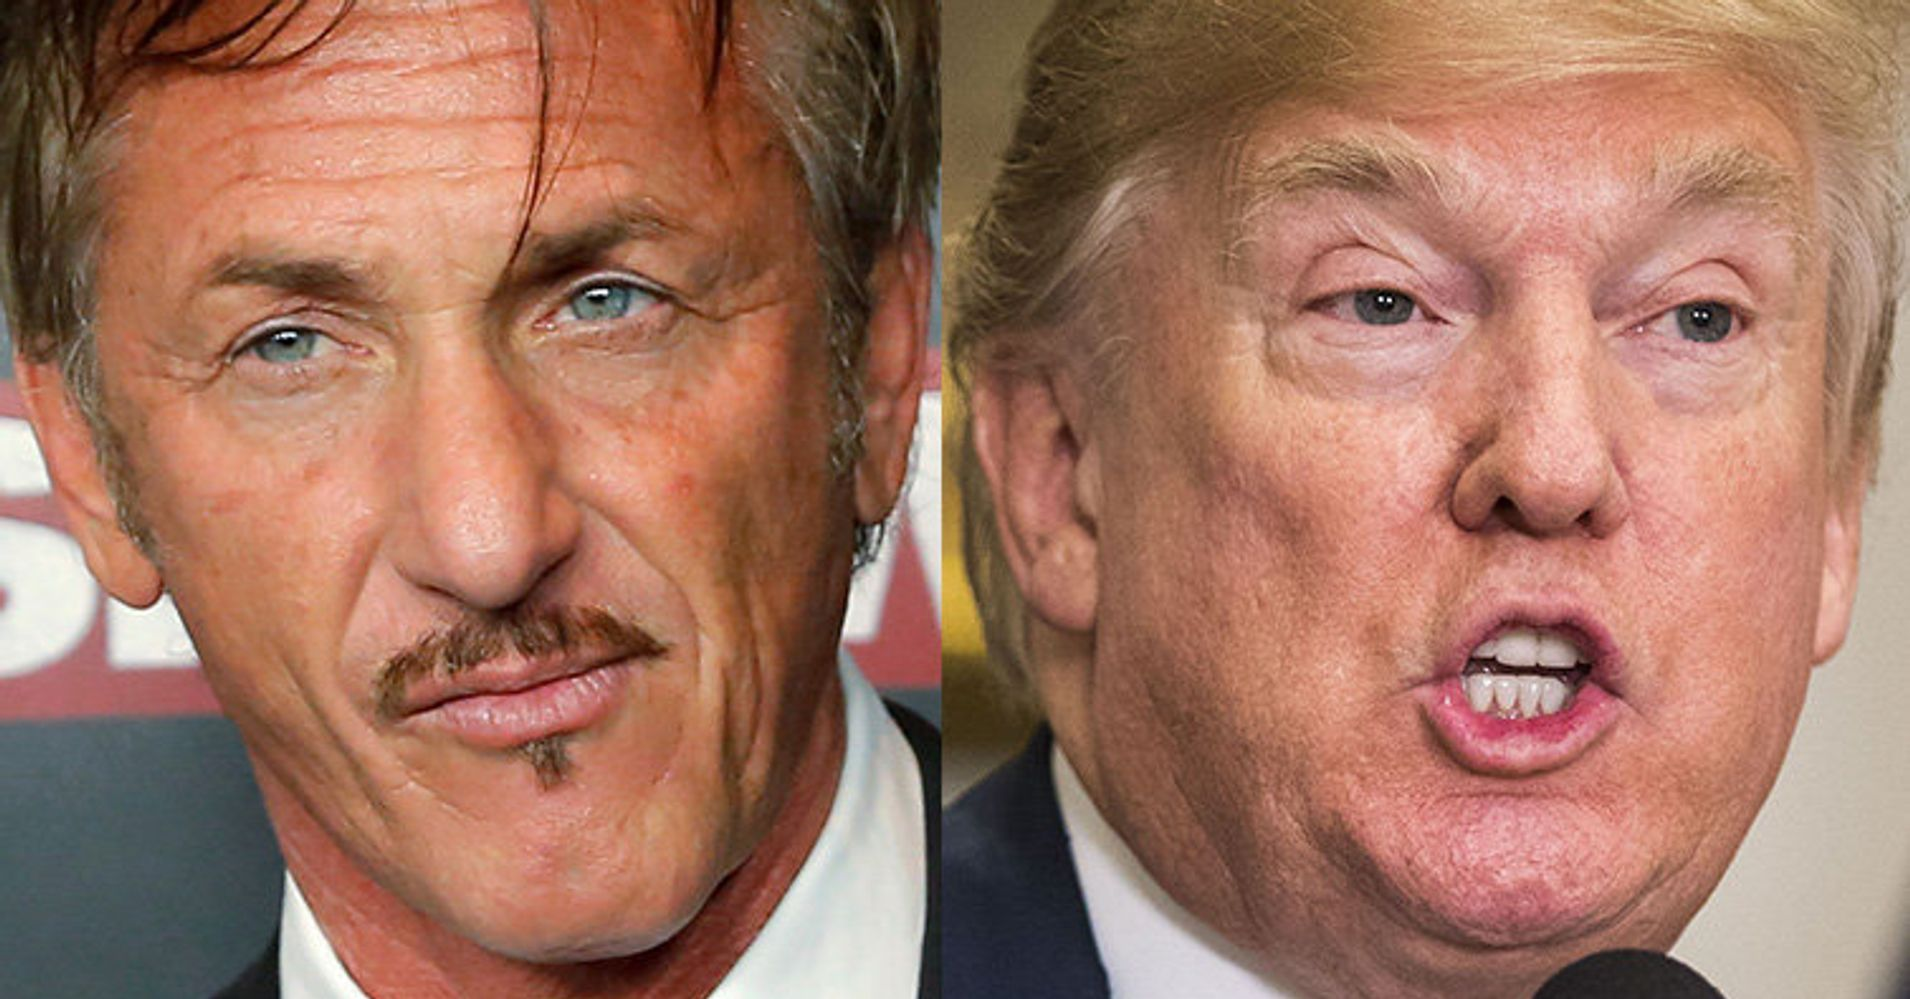 Sean Penn: Trump Is An Enemy Of Compassion And Of The State